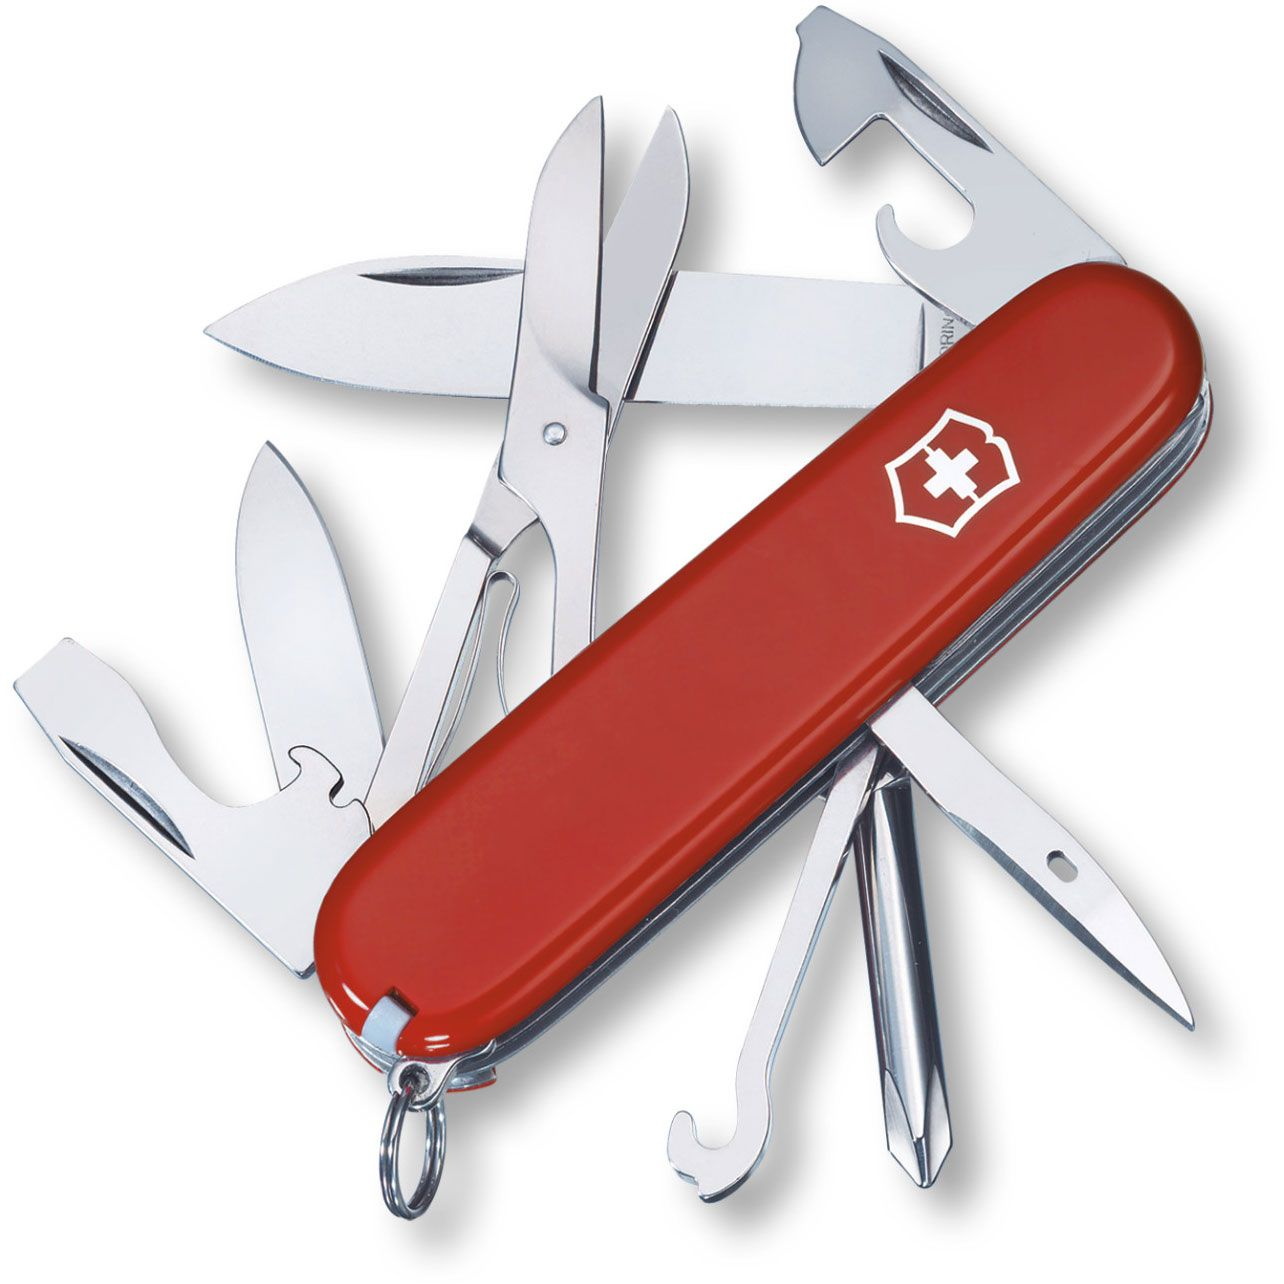 Victorinox Swiss Army Super Tinker Multi-Tool, Red, 3.58 inch Closed